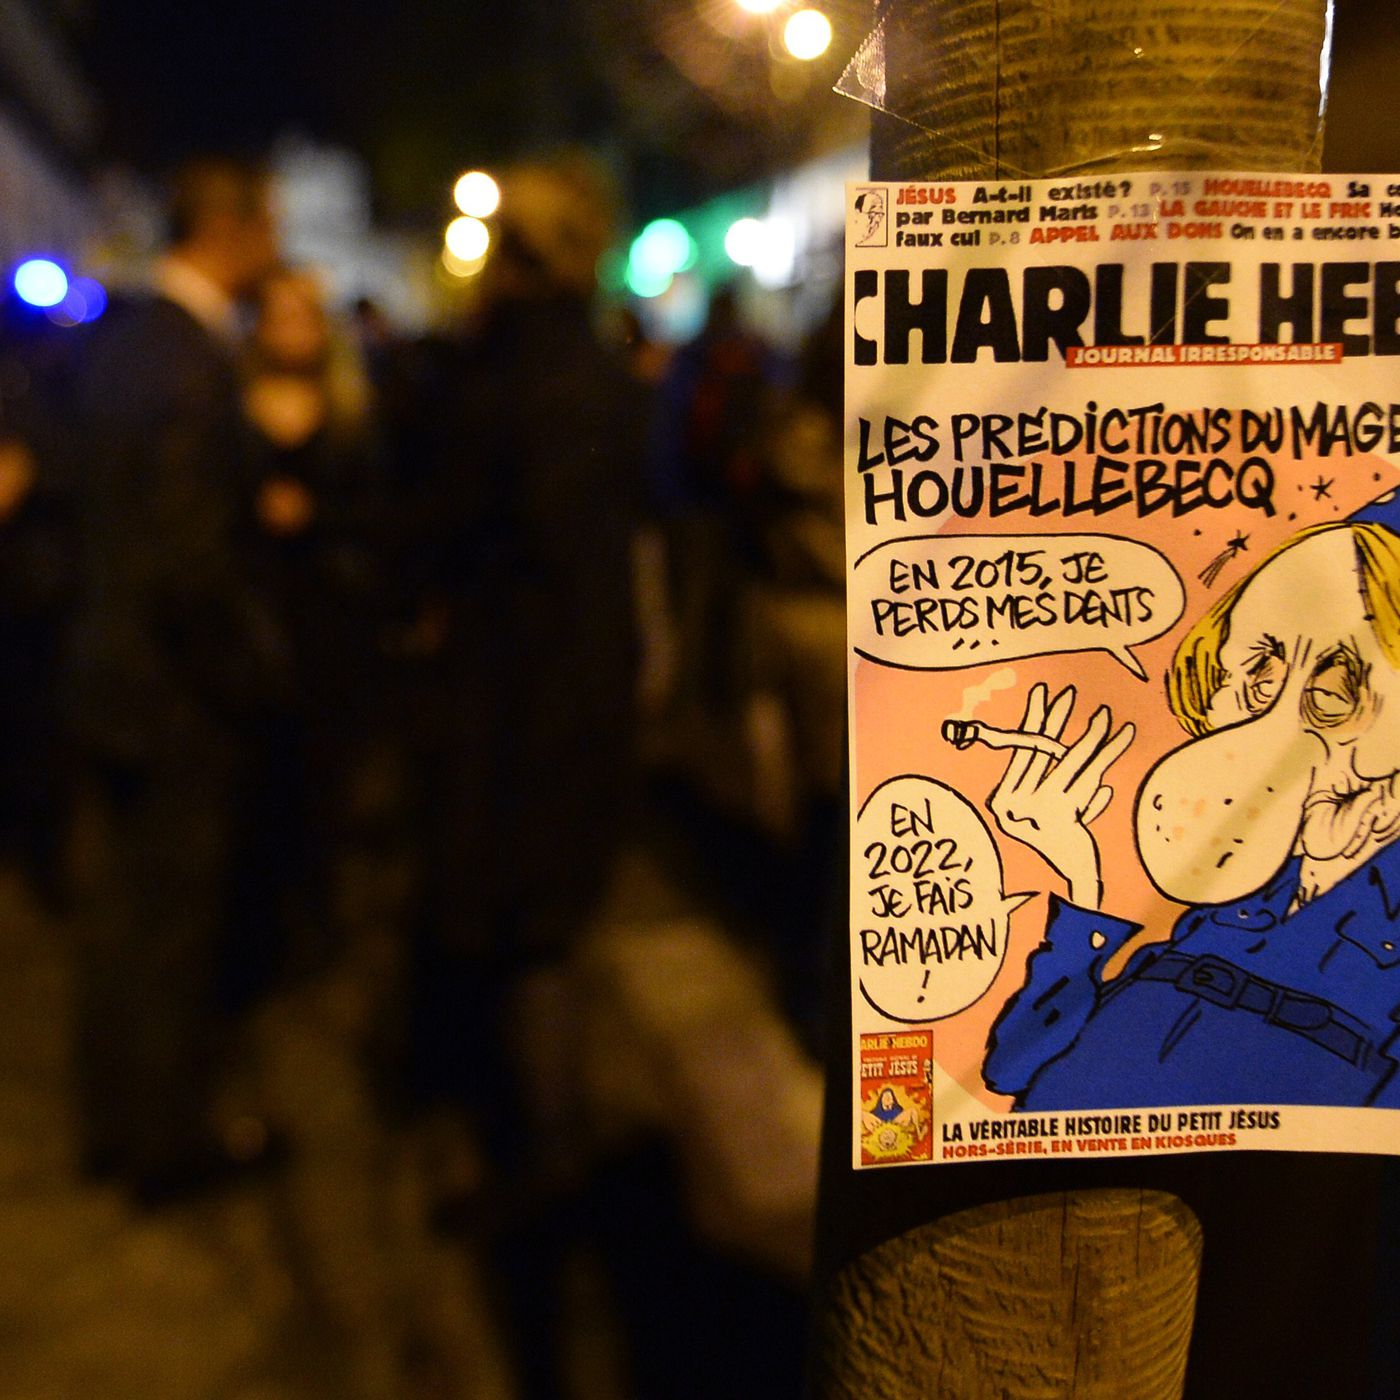 Charlie Hebdo Terrorist Attack Remembering The Victims Vox